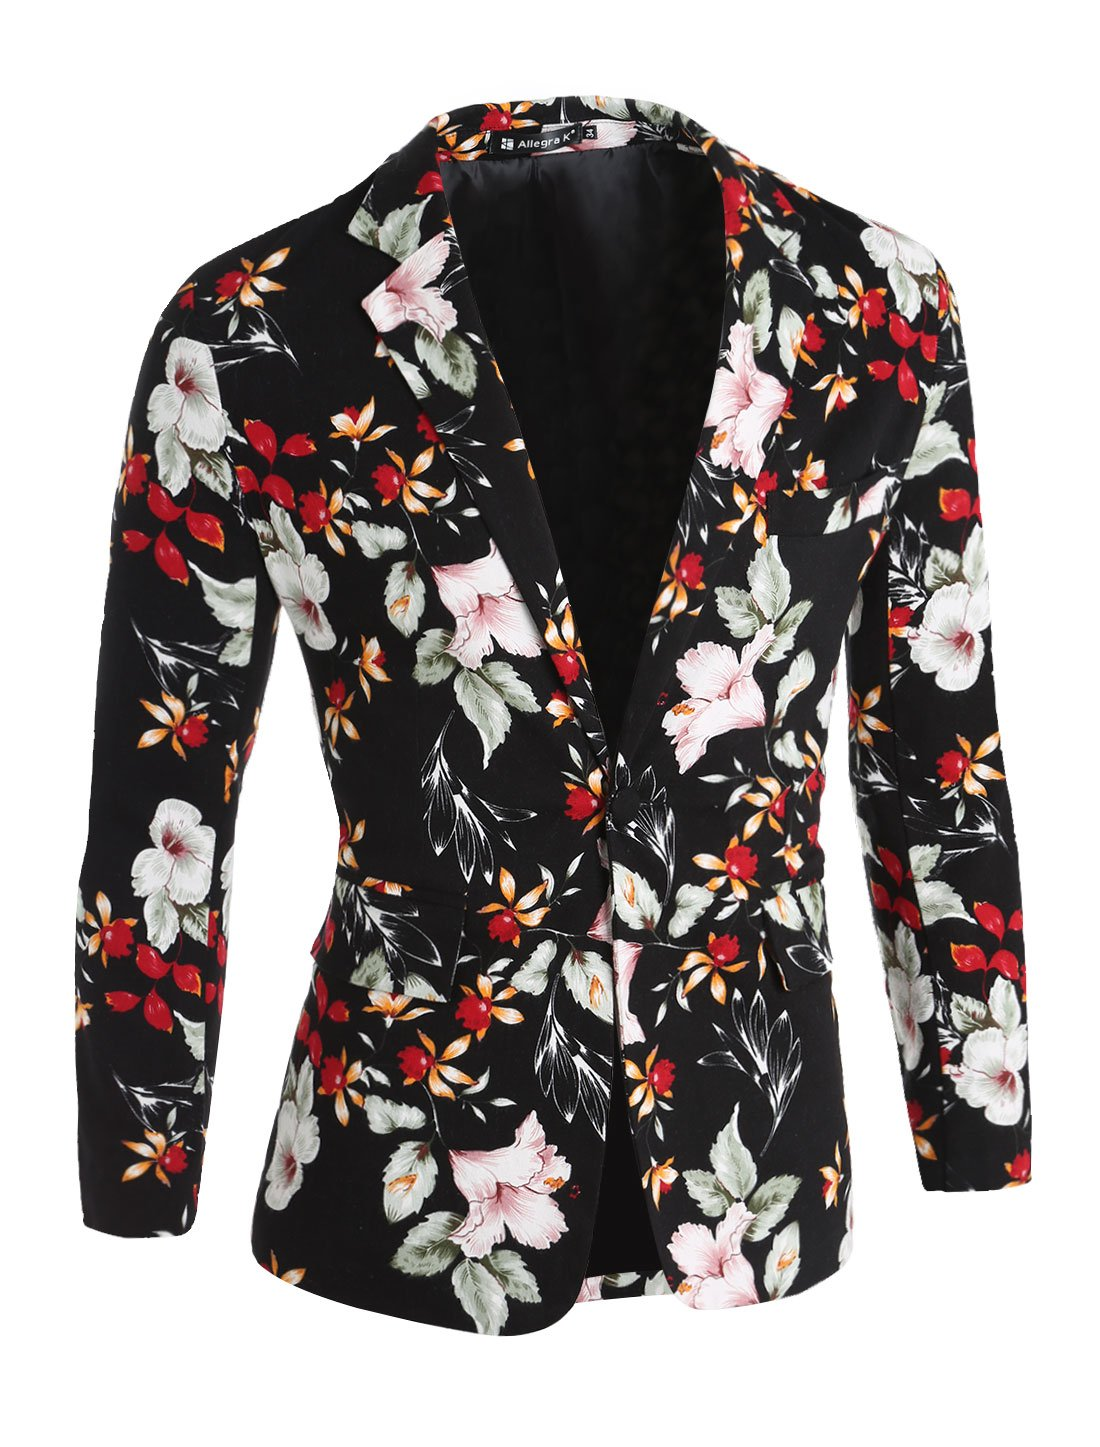 uxcell Men One-Button Notched Lapel Floral Blazer Jacket g14092900ux0048